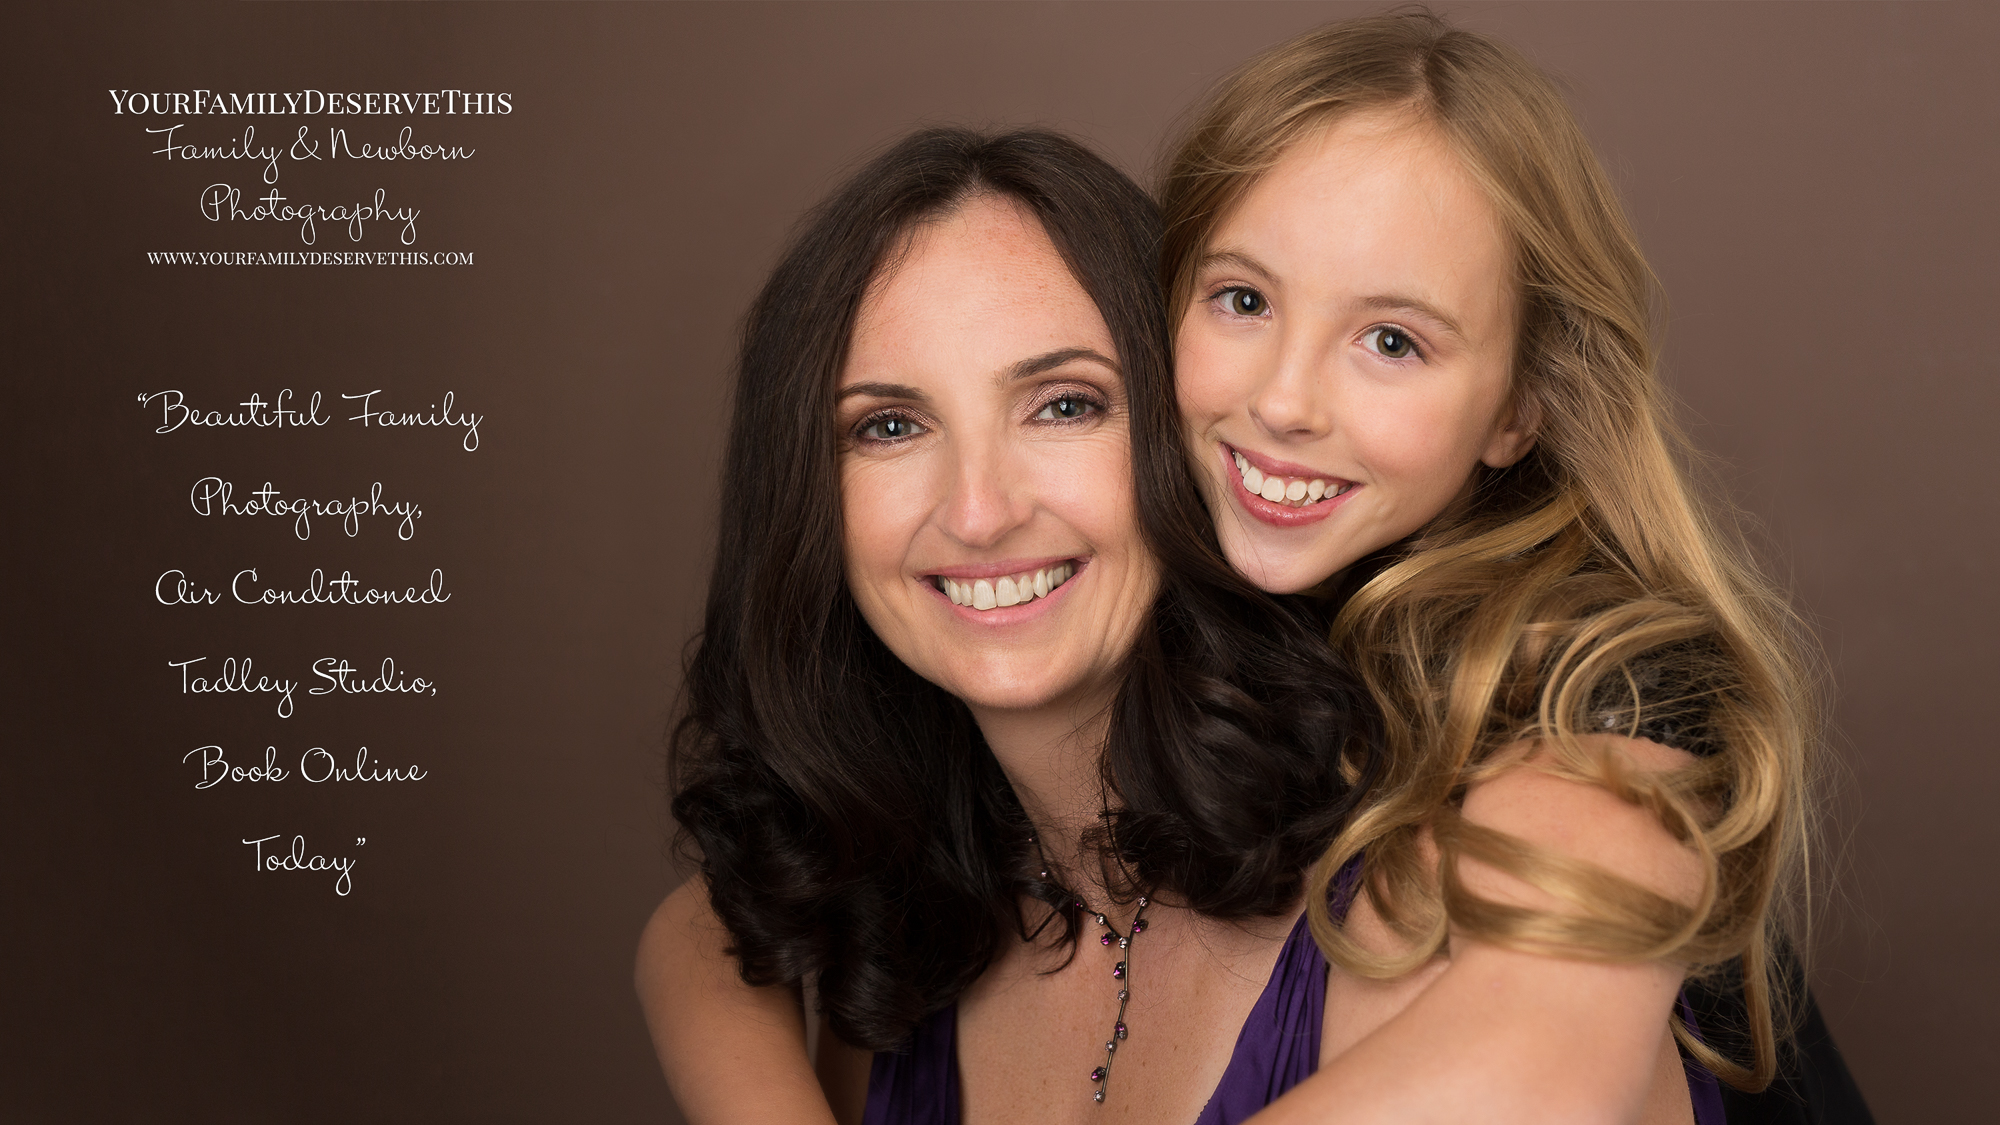 You can now Book Online, easy as 1-2-3,  Studio photoshoots  or on location  Outdoor photoshoots .Beautiful family portraits by YourFamilyDeserveThis Photography - our Studio in Tadley Hampshire -  YouDeserveThis Headshots, Makeover and Photography Studio